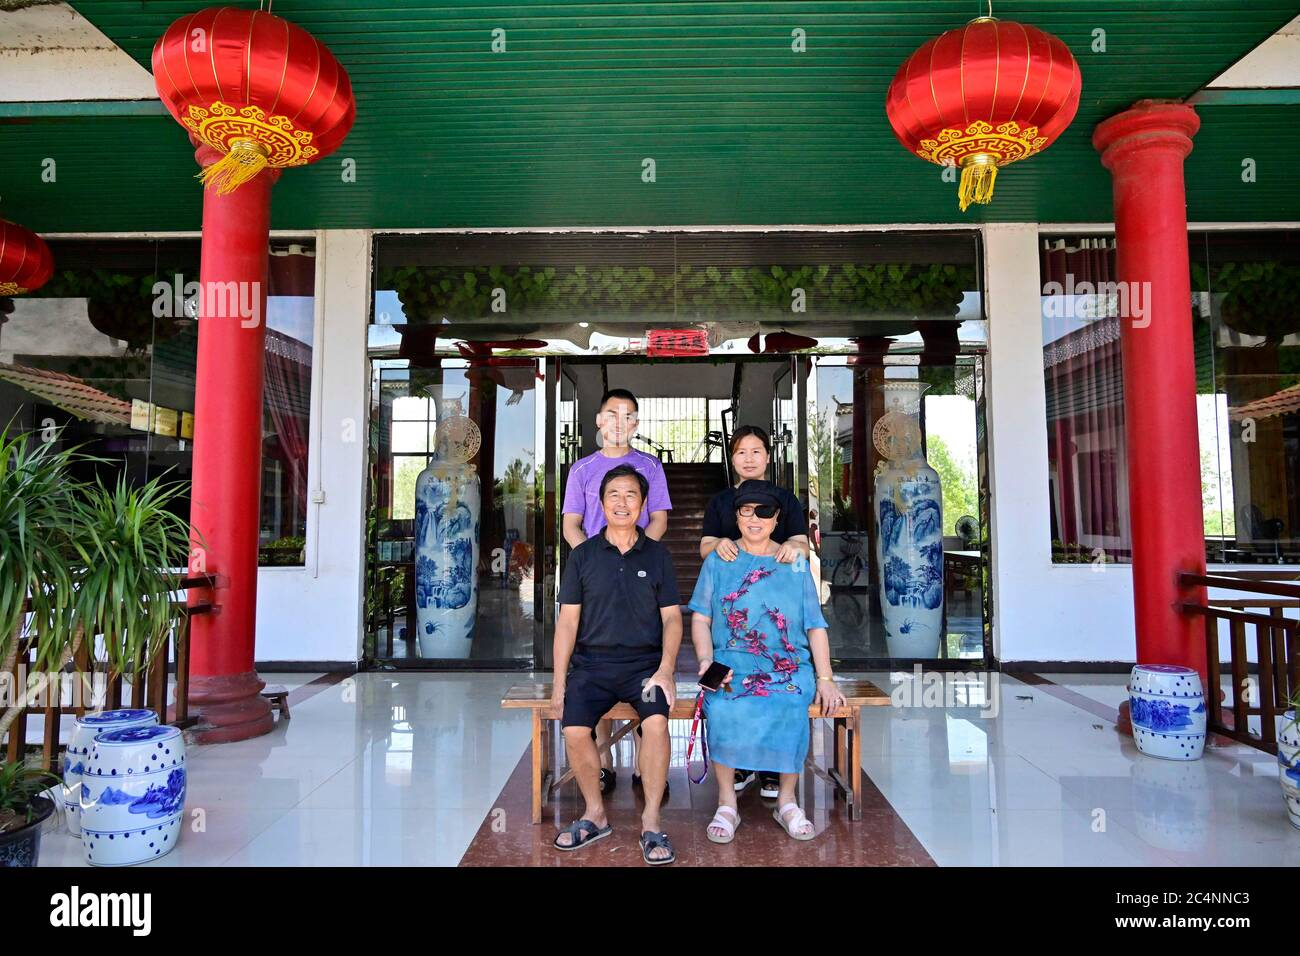 (200628) -- NANCHANG, June 28, 2020 (Xinhua) -- Zhu Yicai (L,front) poses for a photo with his family at his farmhouse in the Poyang Lake scenic area in Yugan County, east China's Jiangxi Province, June 16, 2020. Zhu Yicai gave up his fishing business in 2012 due to the worsening aquatic environment in the Poyang Lake. In 2018, Zhu was running a family farm when he noticed that lots of tourists came to the lake to watch migratory birds. Zhu then captured the business opportunity and opened a 1,800-square-meter farmhouse, which can accommodate more than 200 people dining at the same time. China Stock Photo